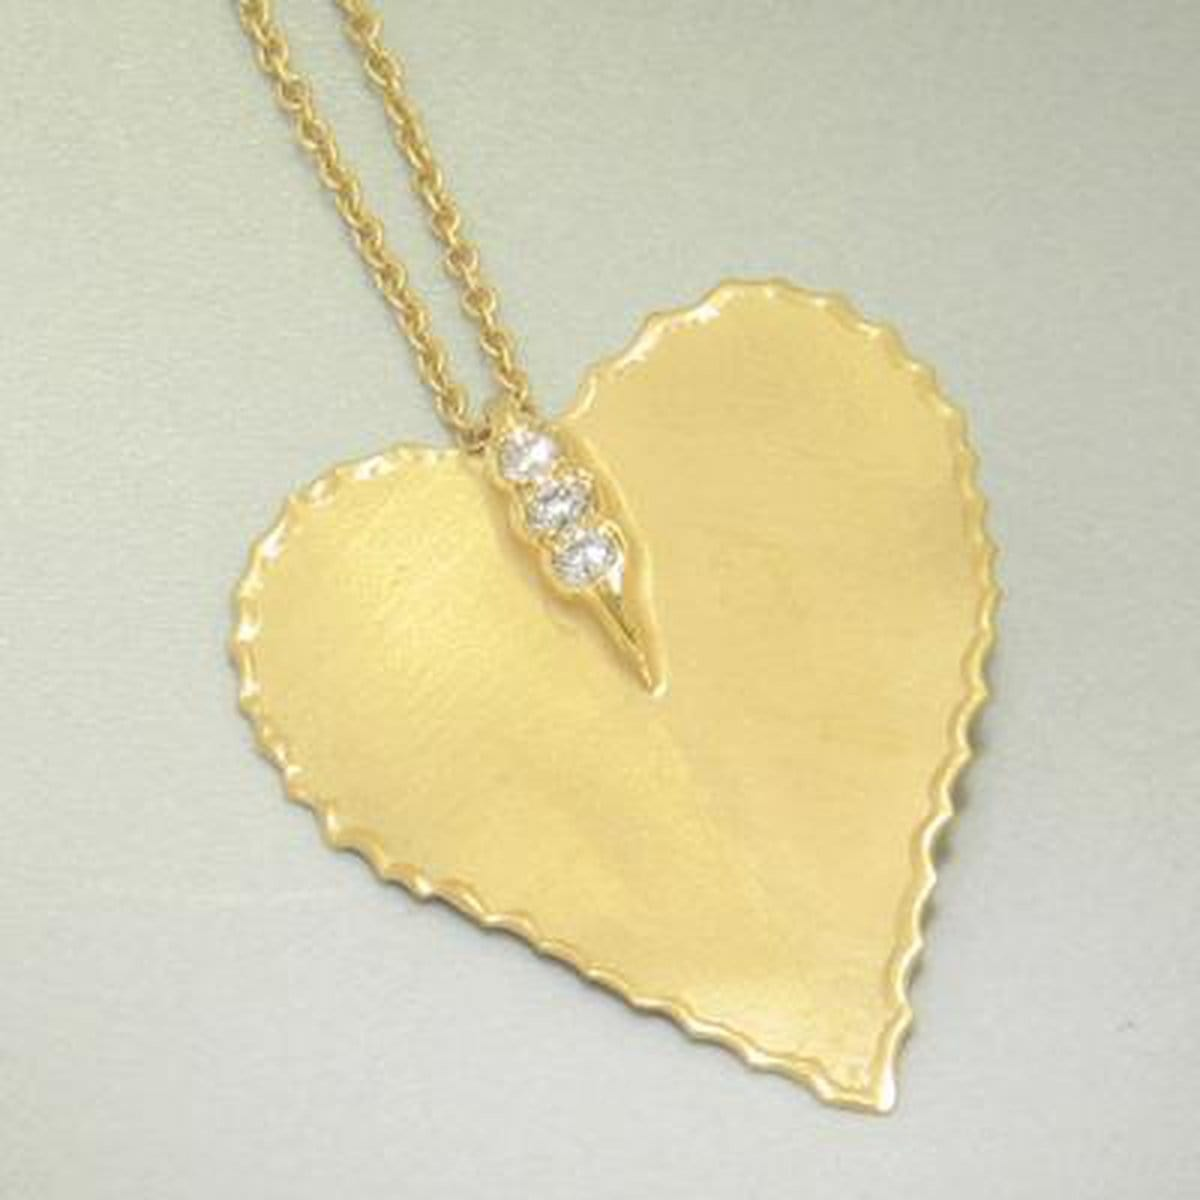 Marika Diamond & 14k Gold Necklace - M4230-Marika-Renee Taylor Gallery